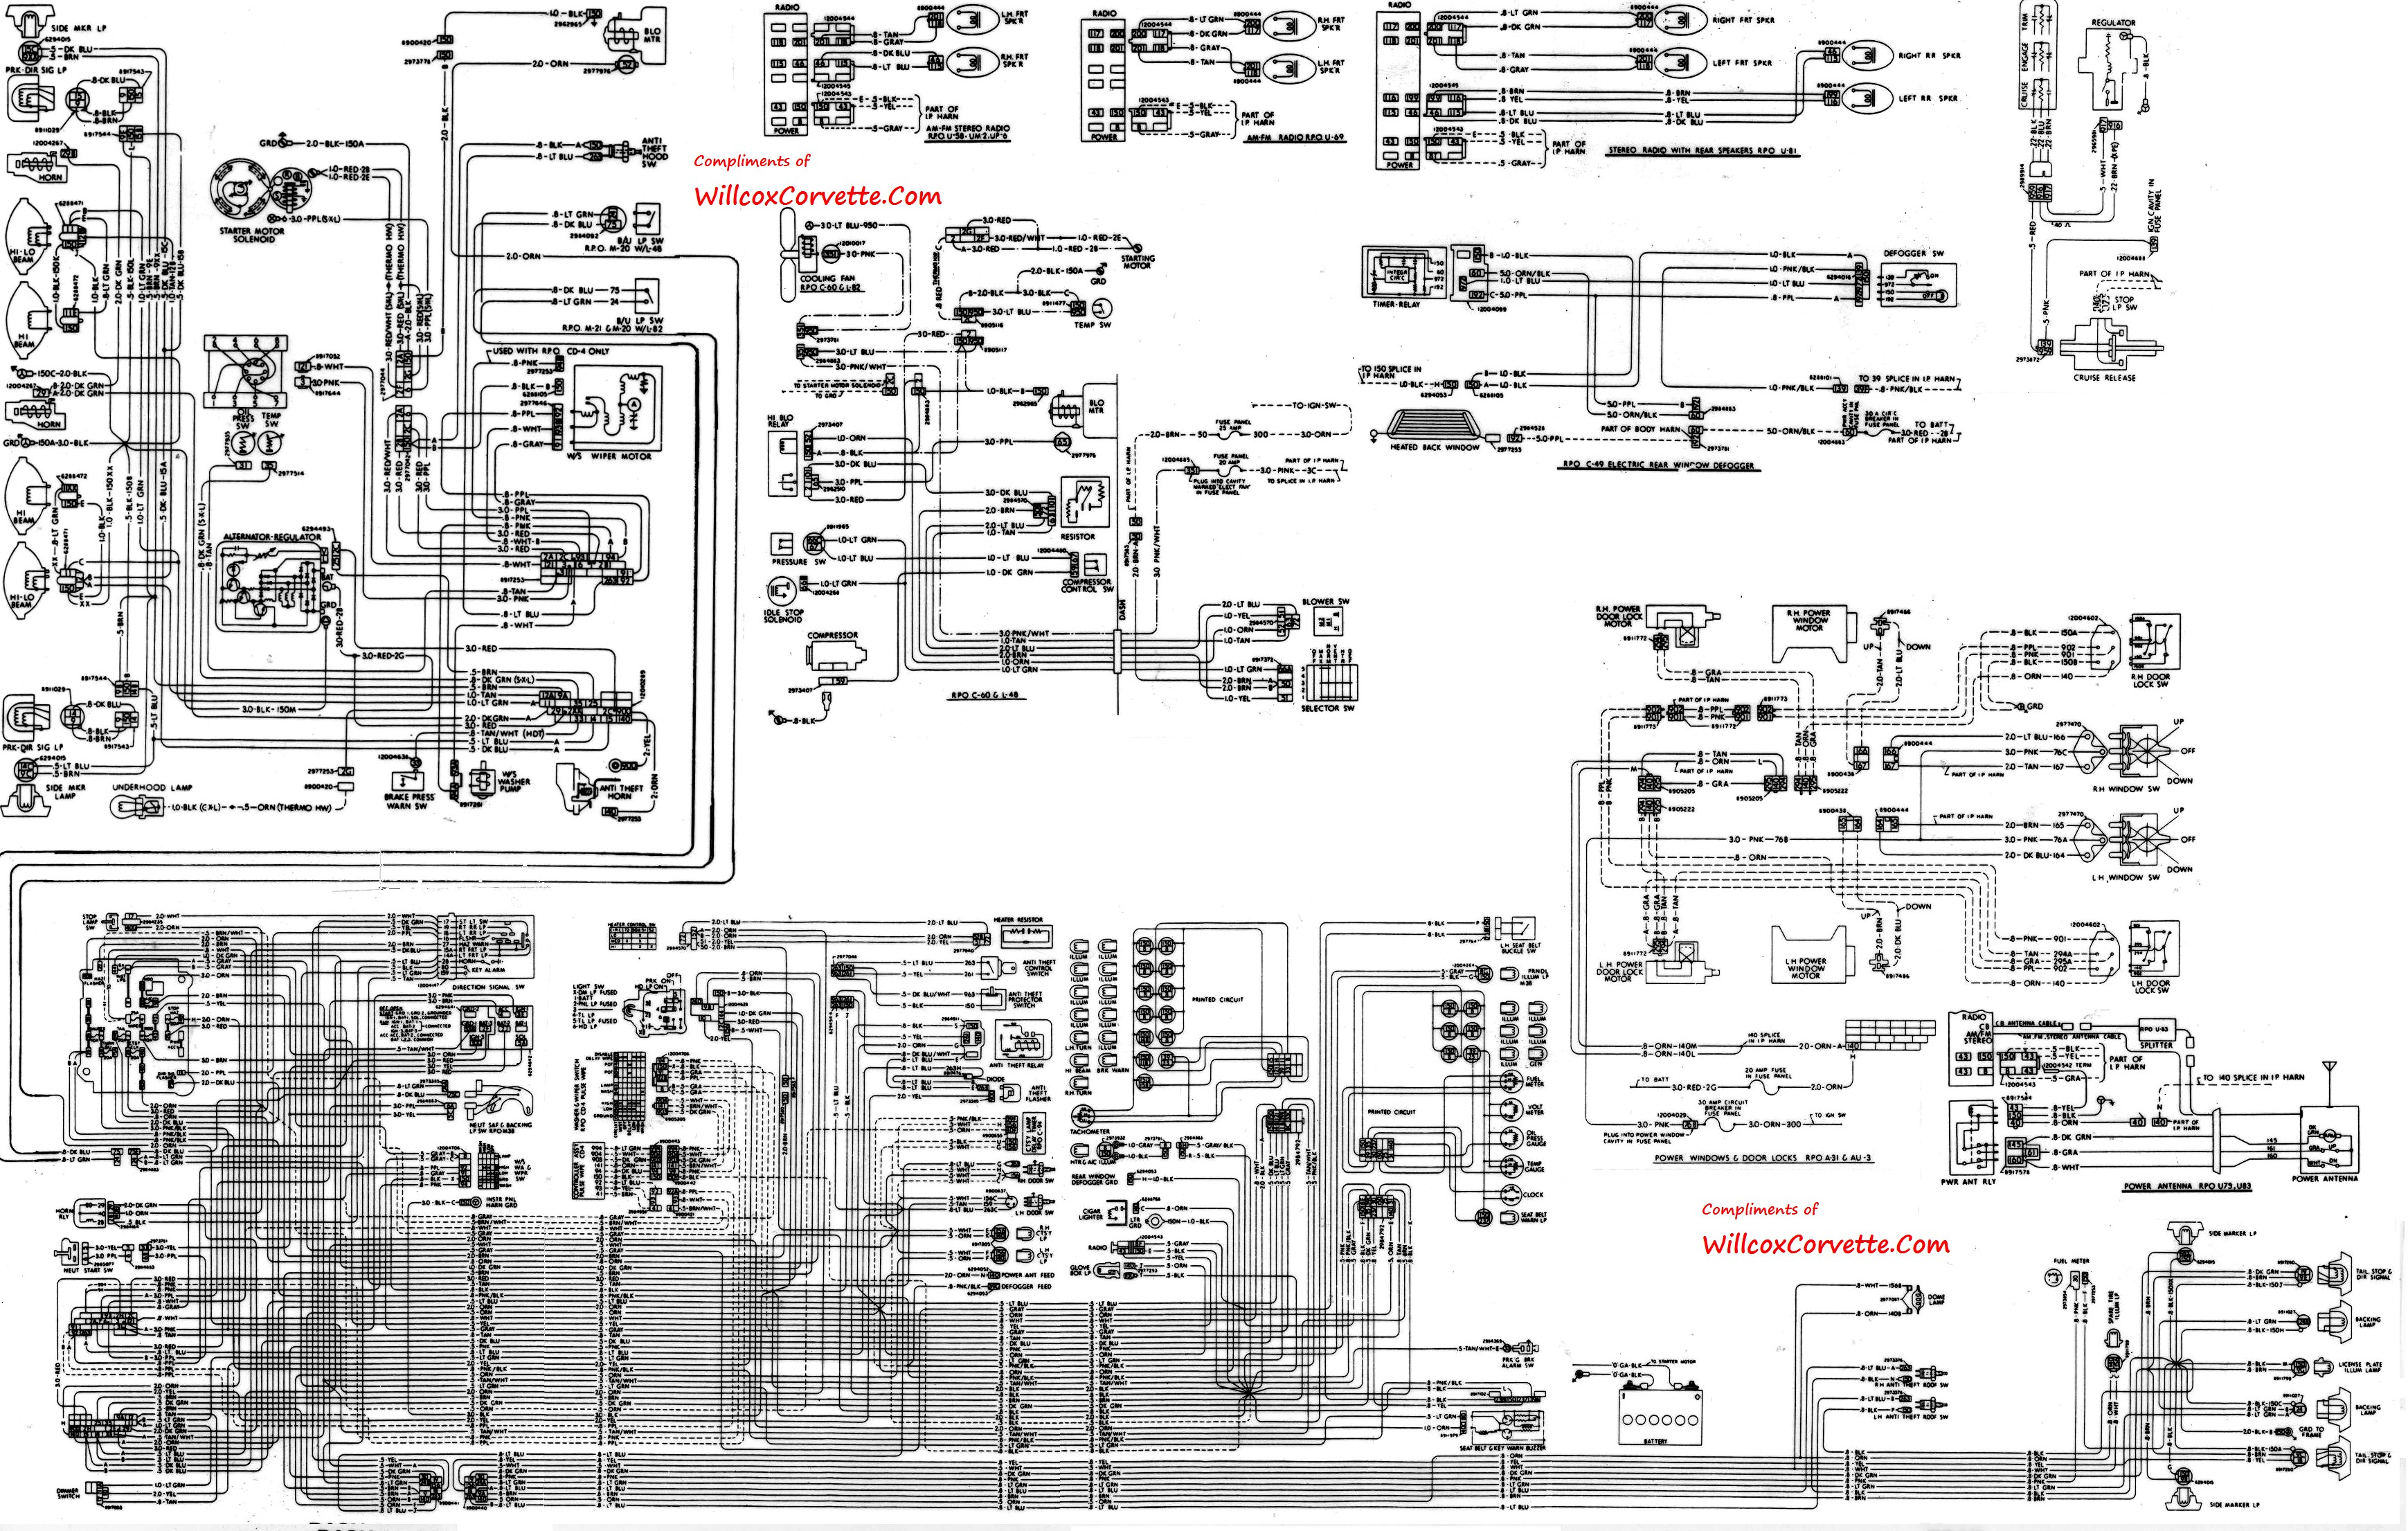 Mercedes car wiring diagram 1979 wire diagram and 1975 corvette mercedes car wiring diagram 1979 wire diagram and 1975 corvette wiring wiring diagram of mercedes car cheapraybanclubmaster Image collections